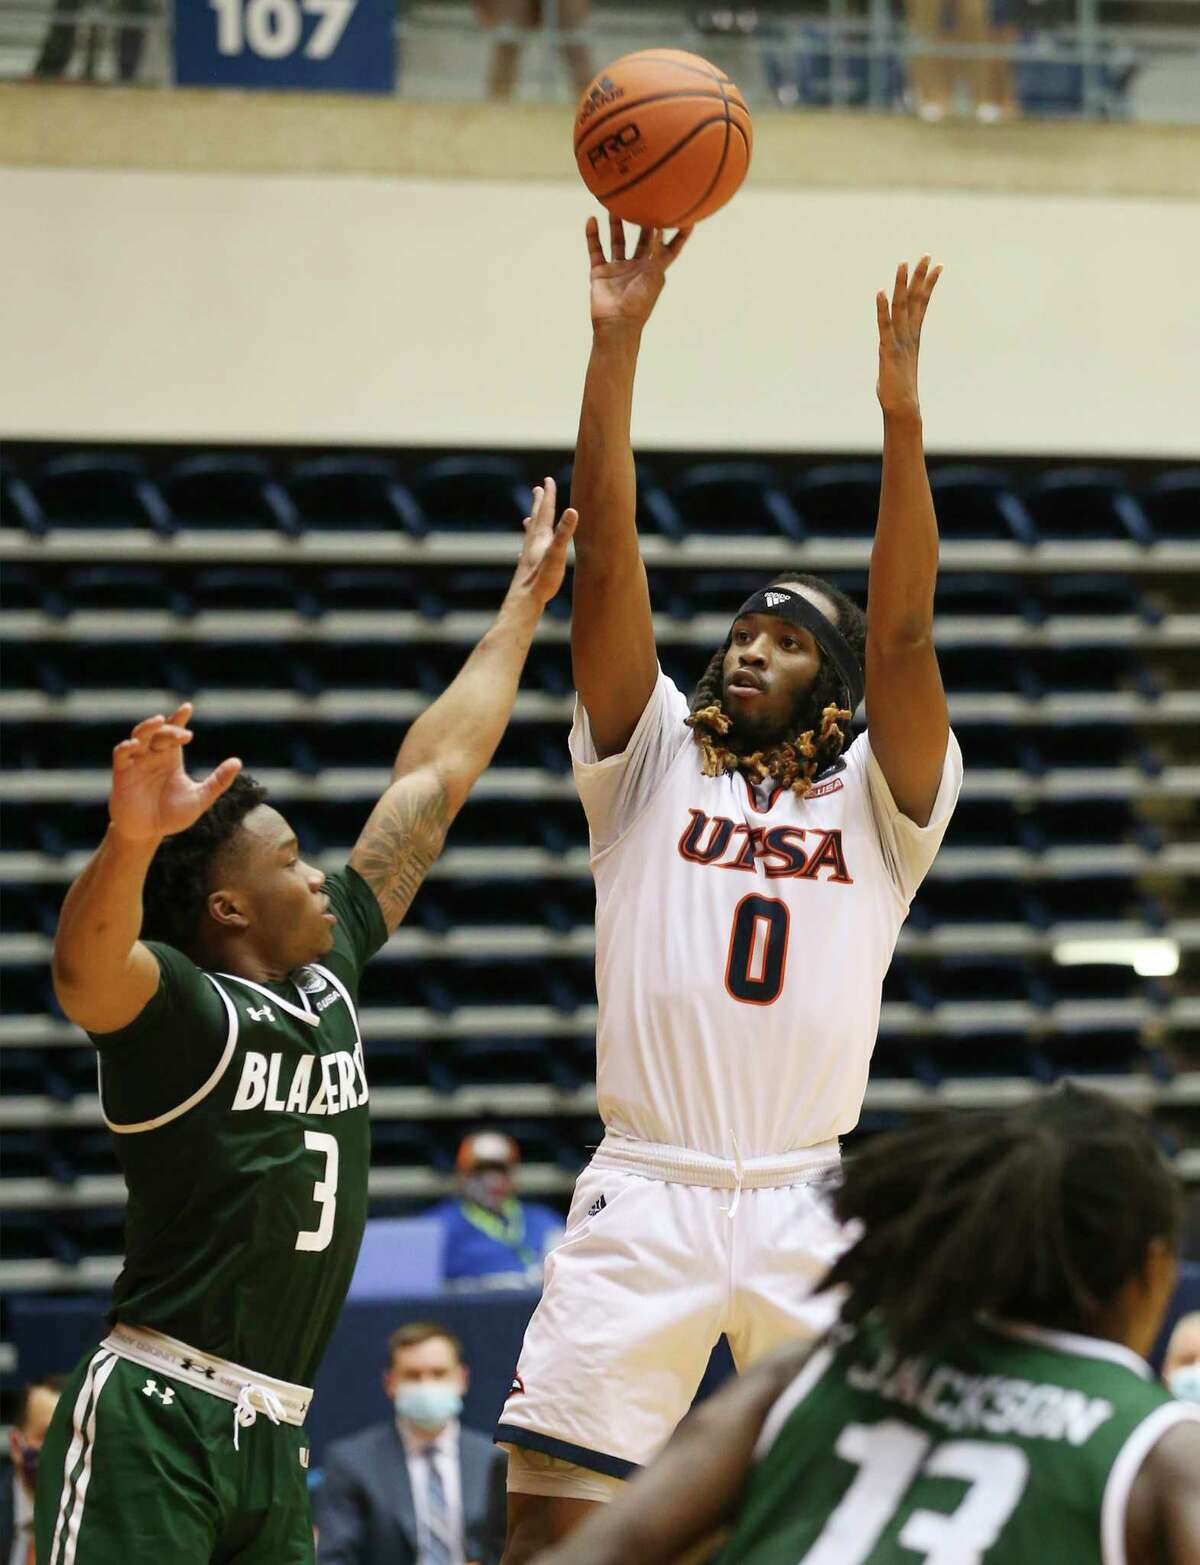 UTSA's Cedrick Alley Jr. (00) shoots over University of Alabama Birmingham's Tavin Lovan (03) during men's basketball at the Convocation Center on Friday, Feb. 26, 2021. UTSA goes down, 57-64, to UAB and will play again on Saturday.